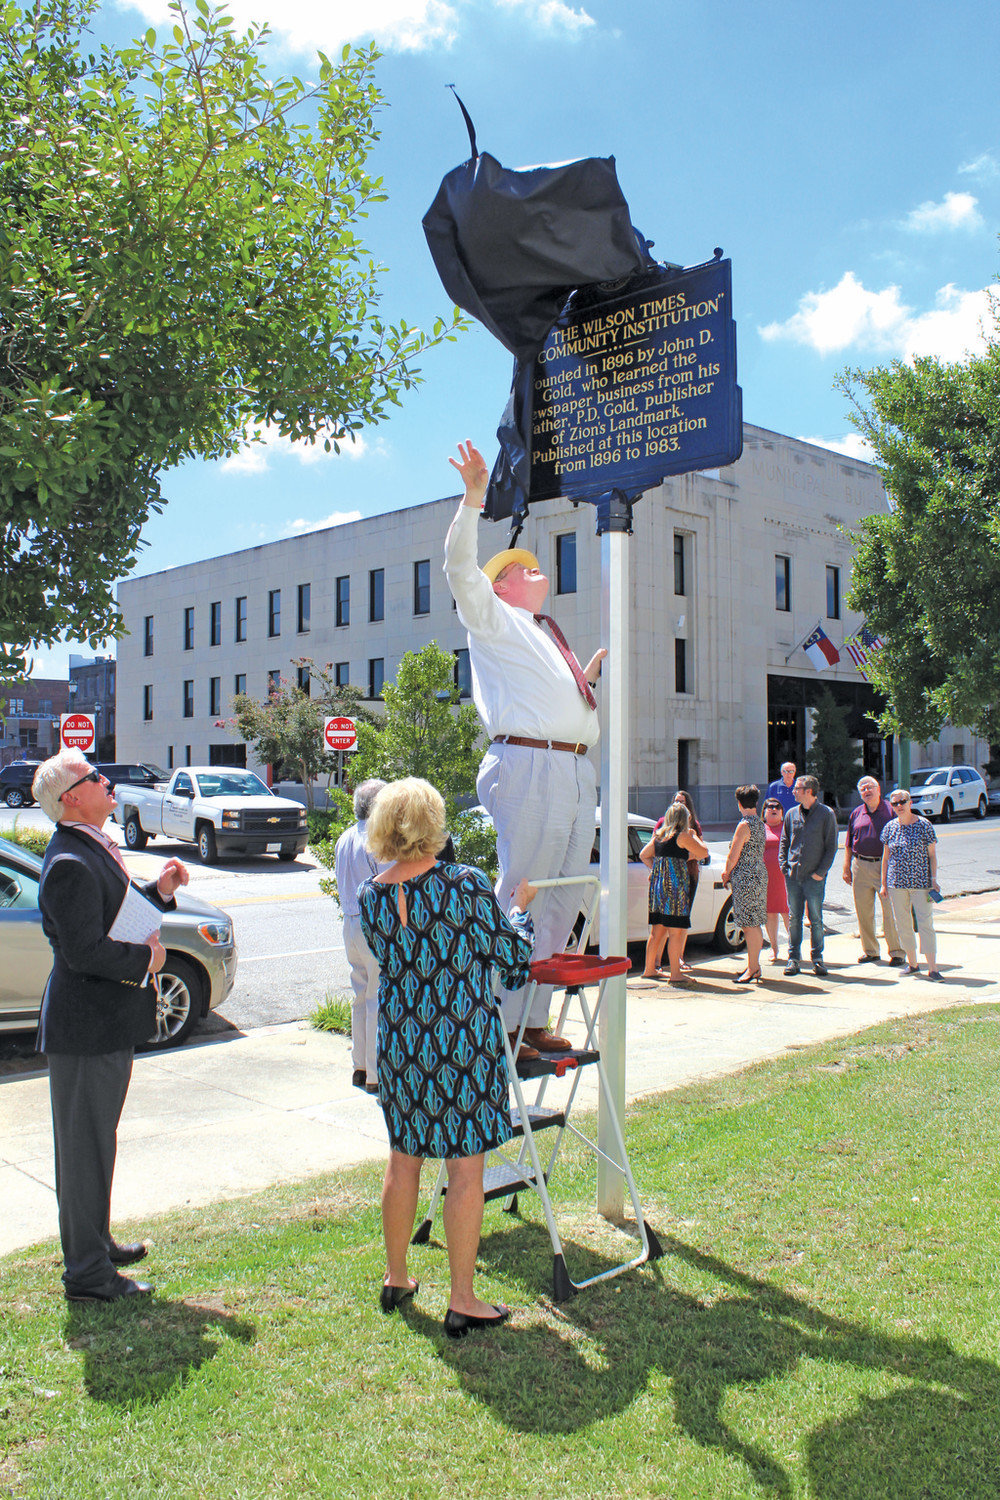 Wilson County Historical Association President Perry Morrison unveils a historical marker on Goldsboro Street near The Wilson Times' former home Wednesday afternoon. Drew C. Wilson | Times